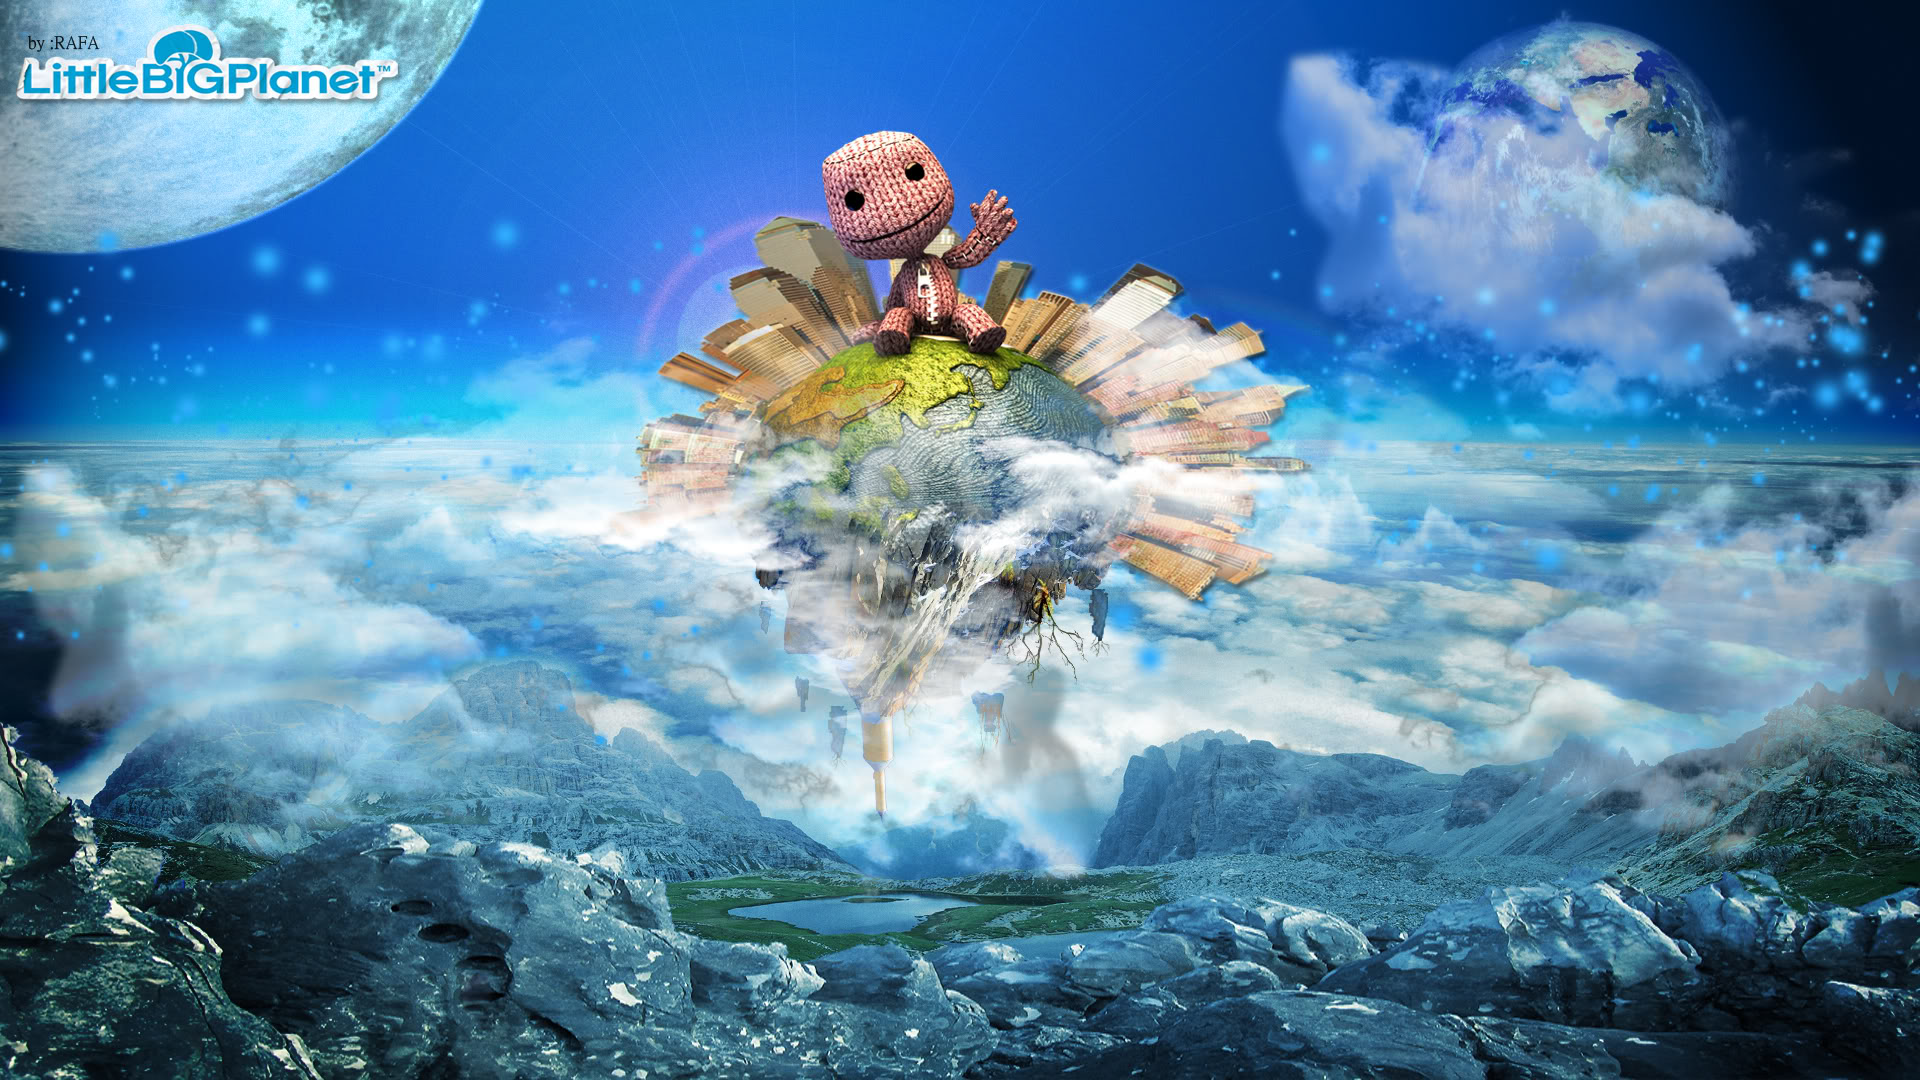 Little Big Planet Wallpaper: HD Little Big Planet Wallpapers